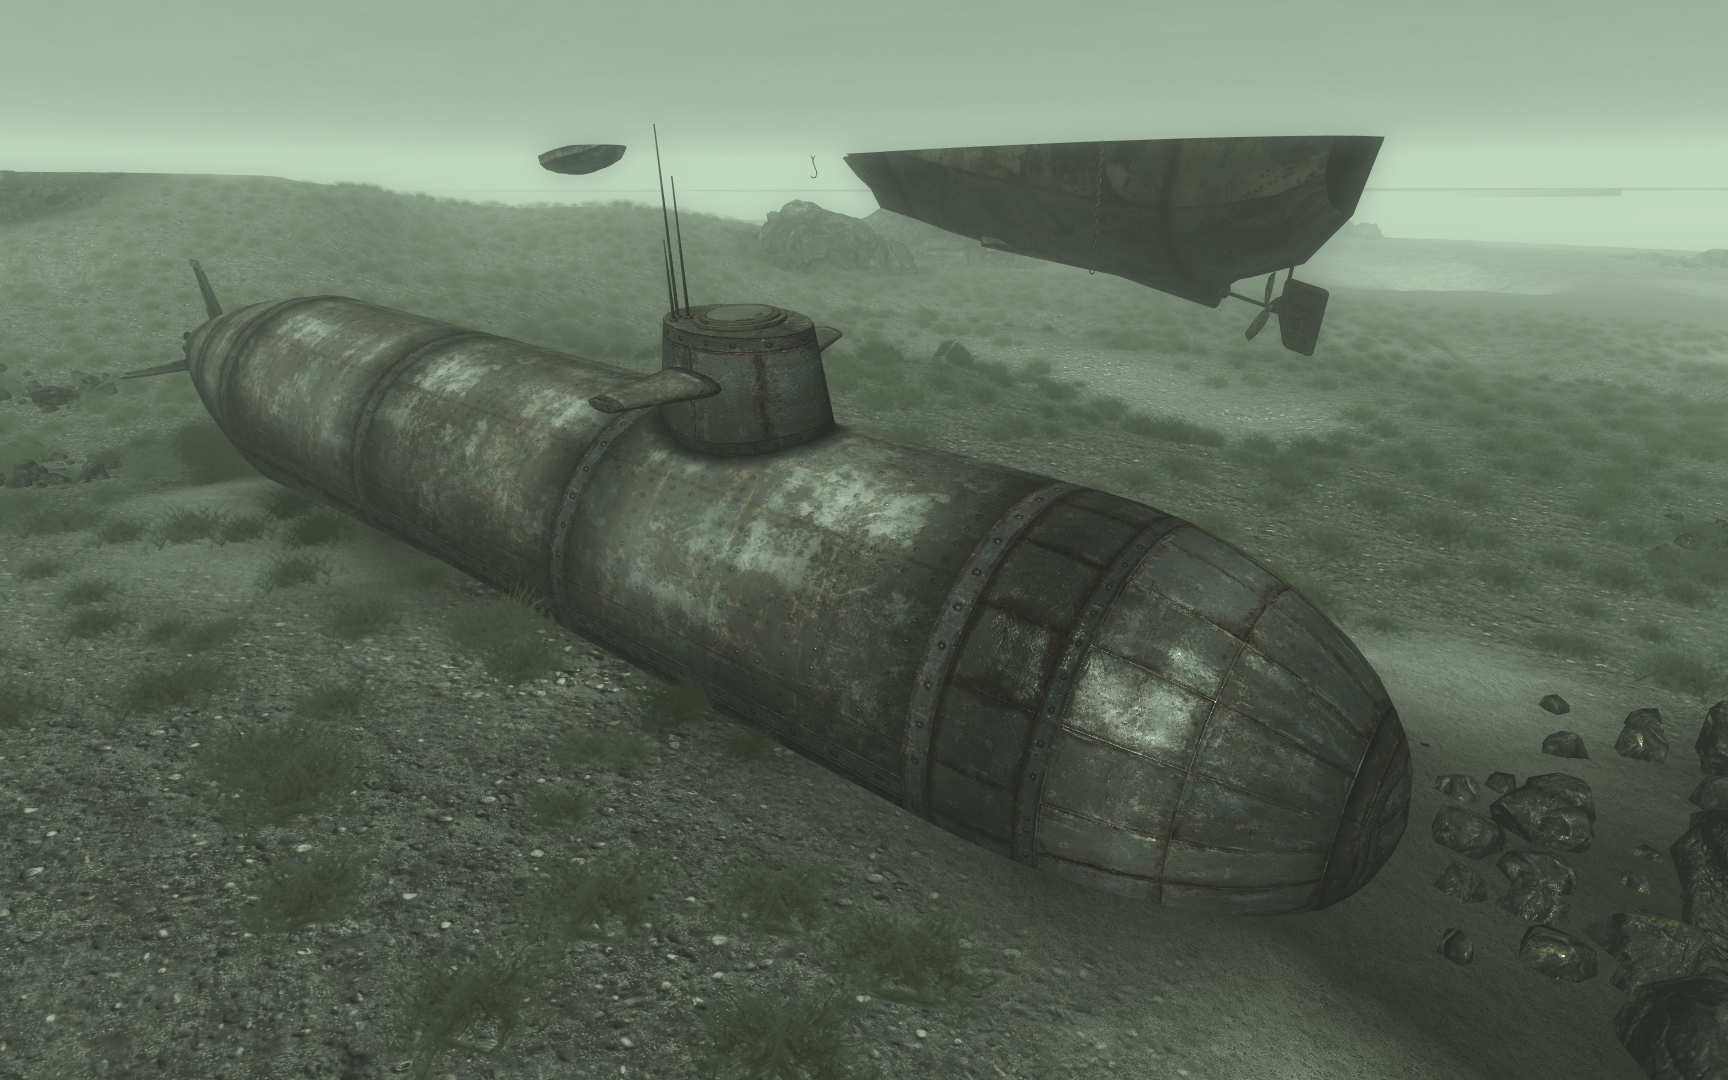 SSN-37-1A - The Fallout wiki - Fallout: New Vegas and more